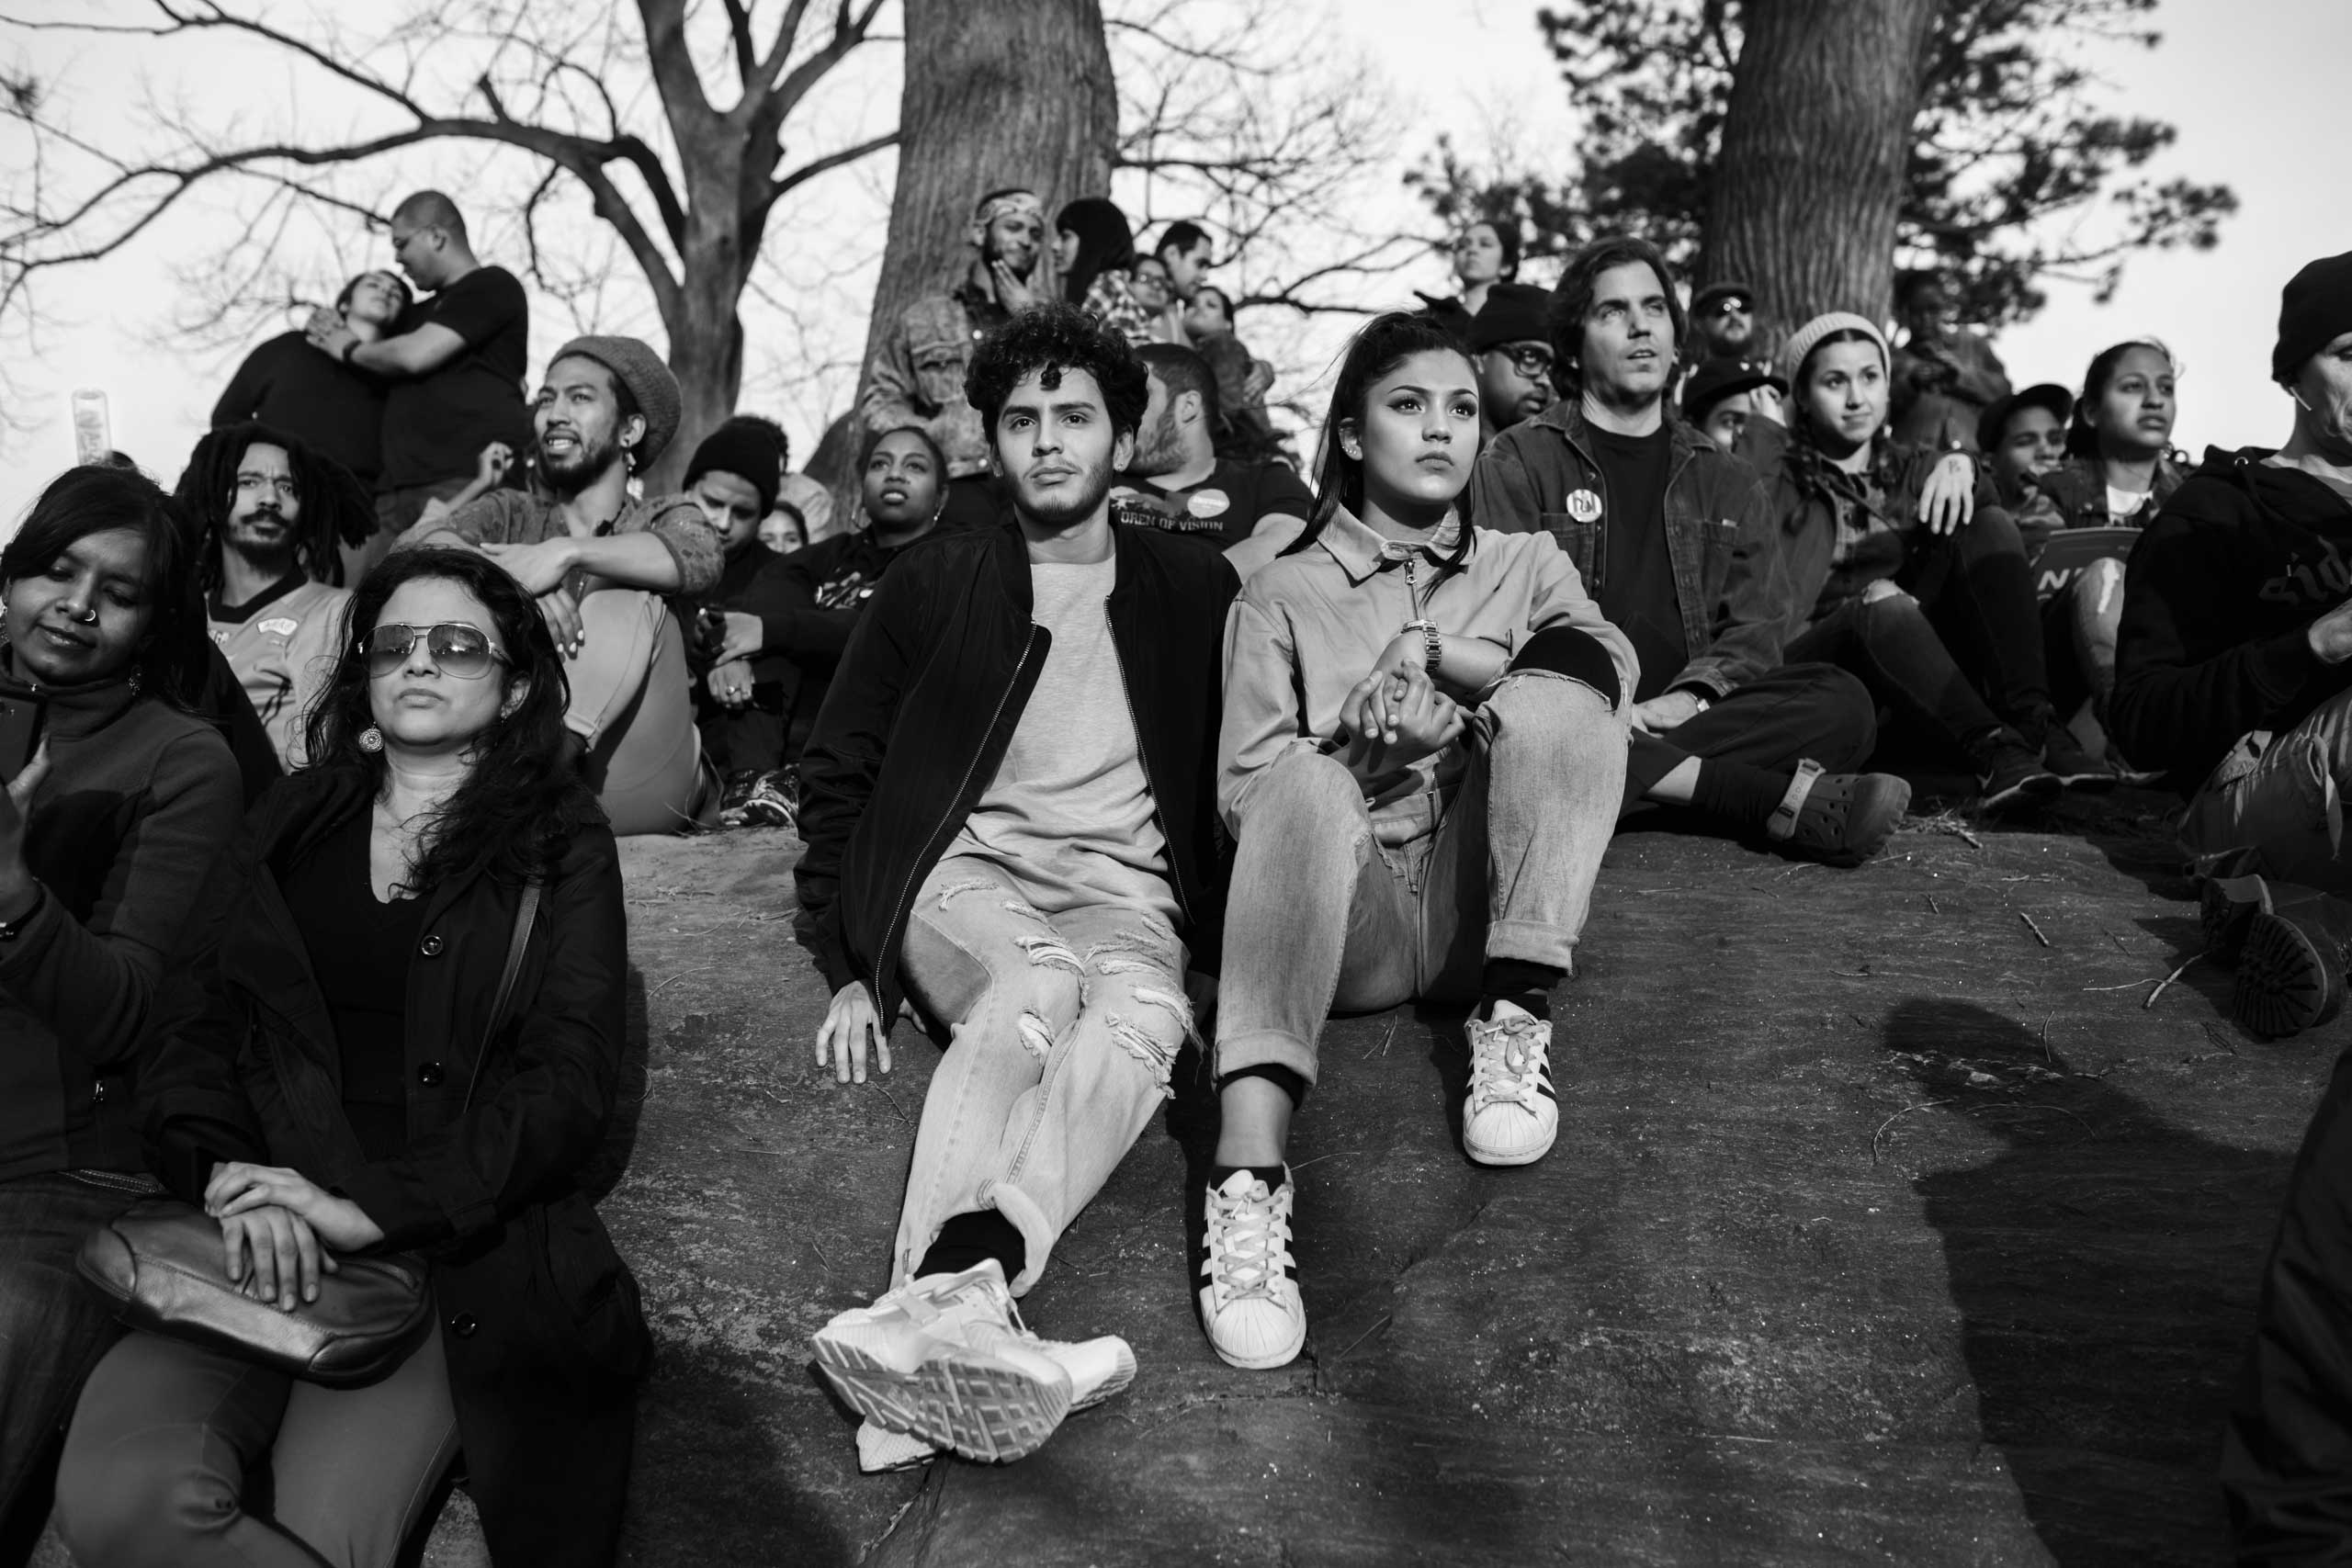 March 31, 2016 - New York, New York: People gather in St. Marys Park in the South Bronx to attend a Bernie Sanders Rally. It's the first time a candidate made a campaign stop in the South Bronx since 1980.